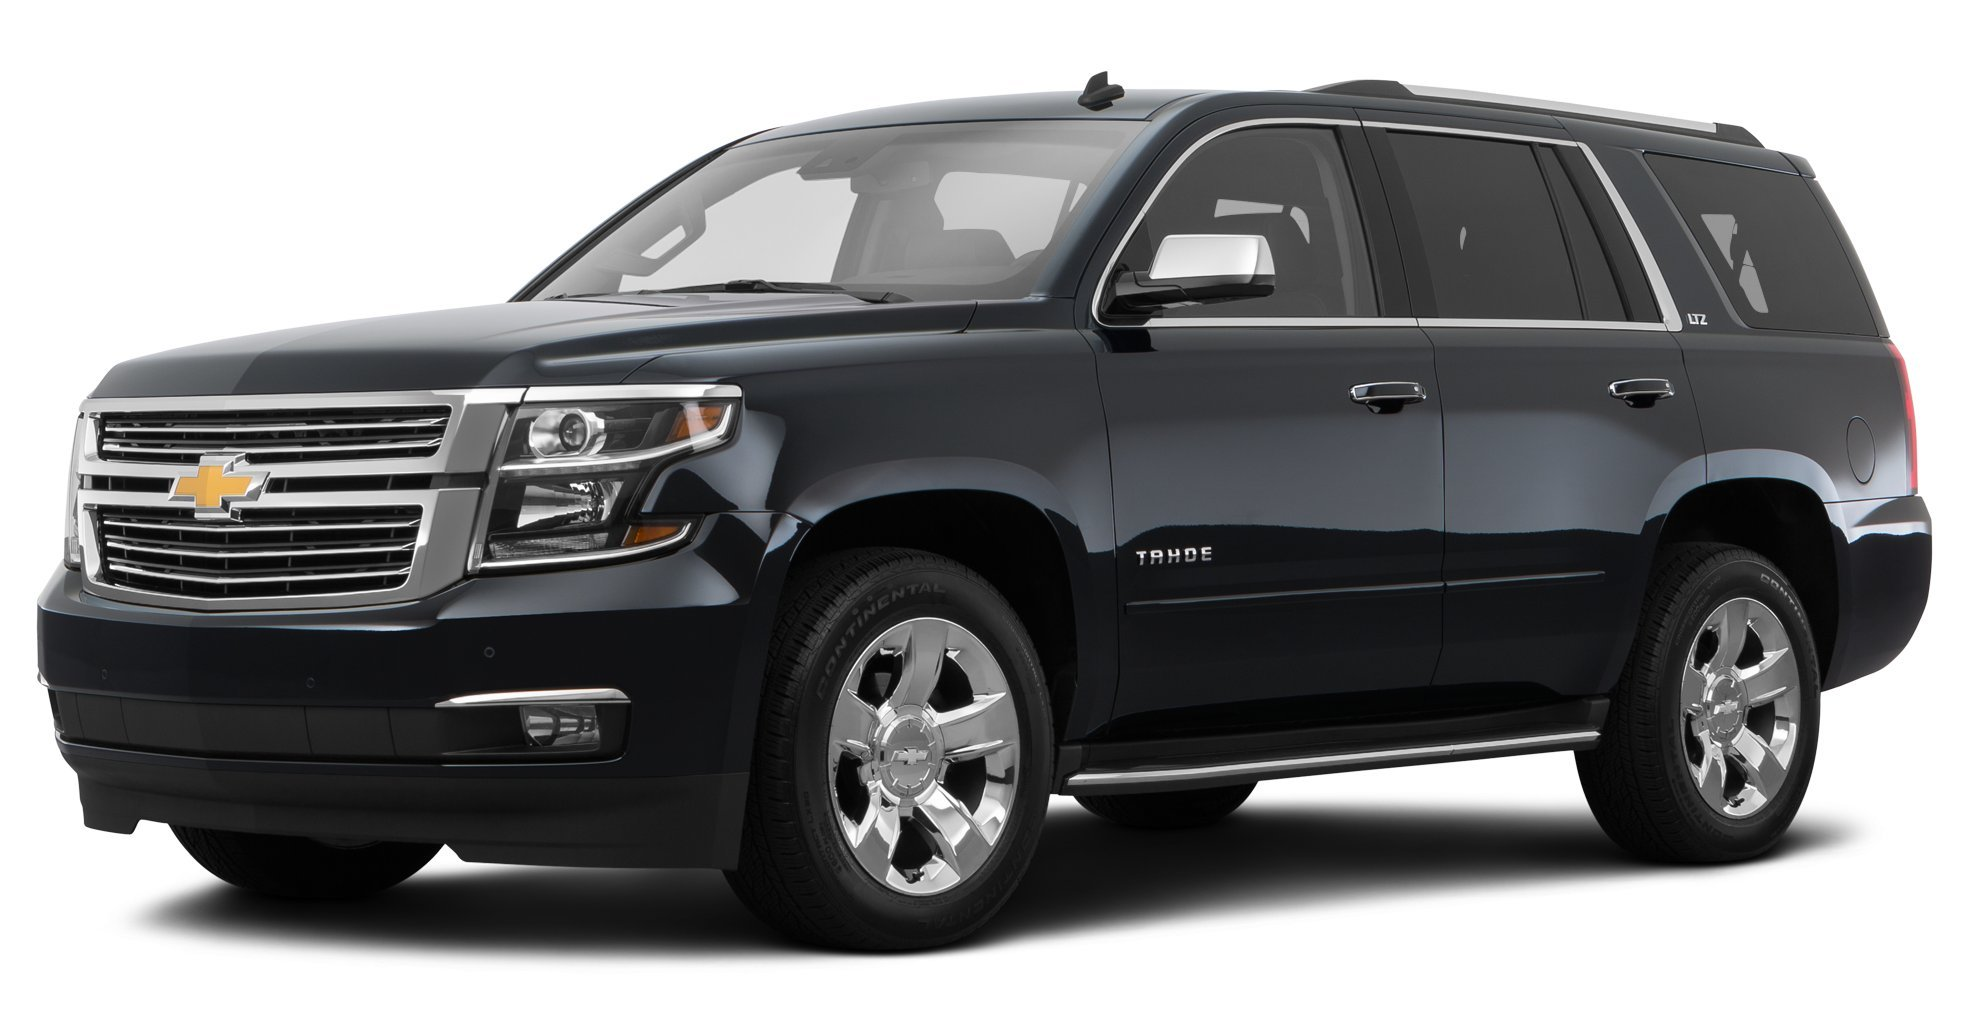 2015 dodge durango reviews images and specs vehicles. Black Bedroom Furniture Sets. Home Design Ideas